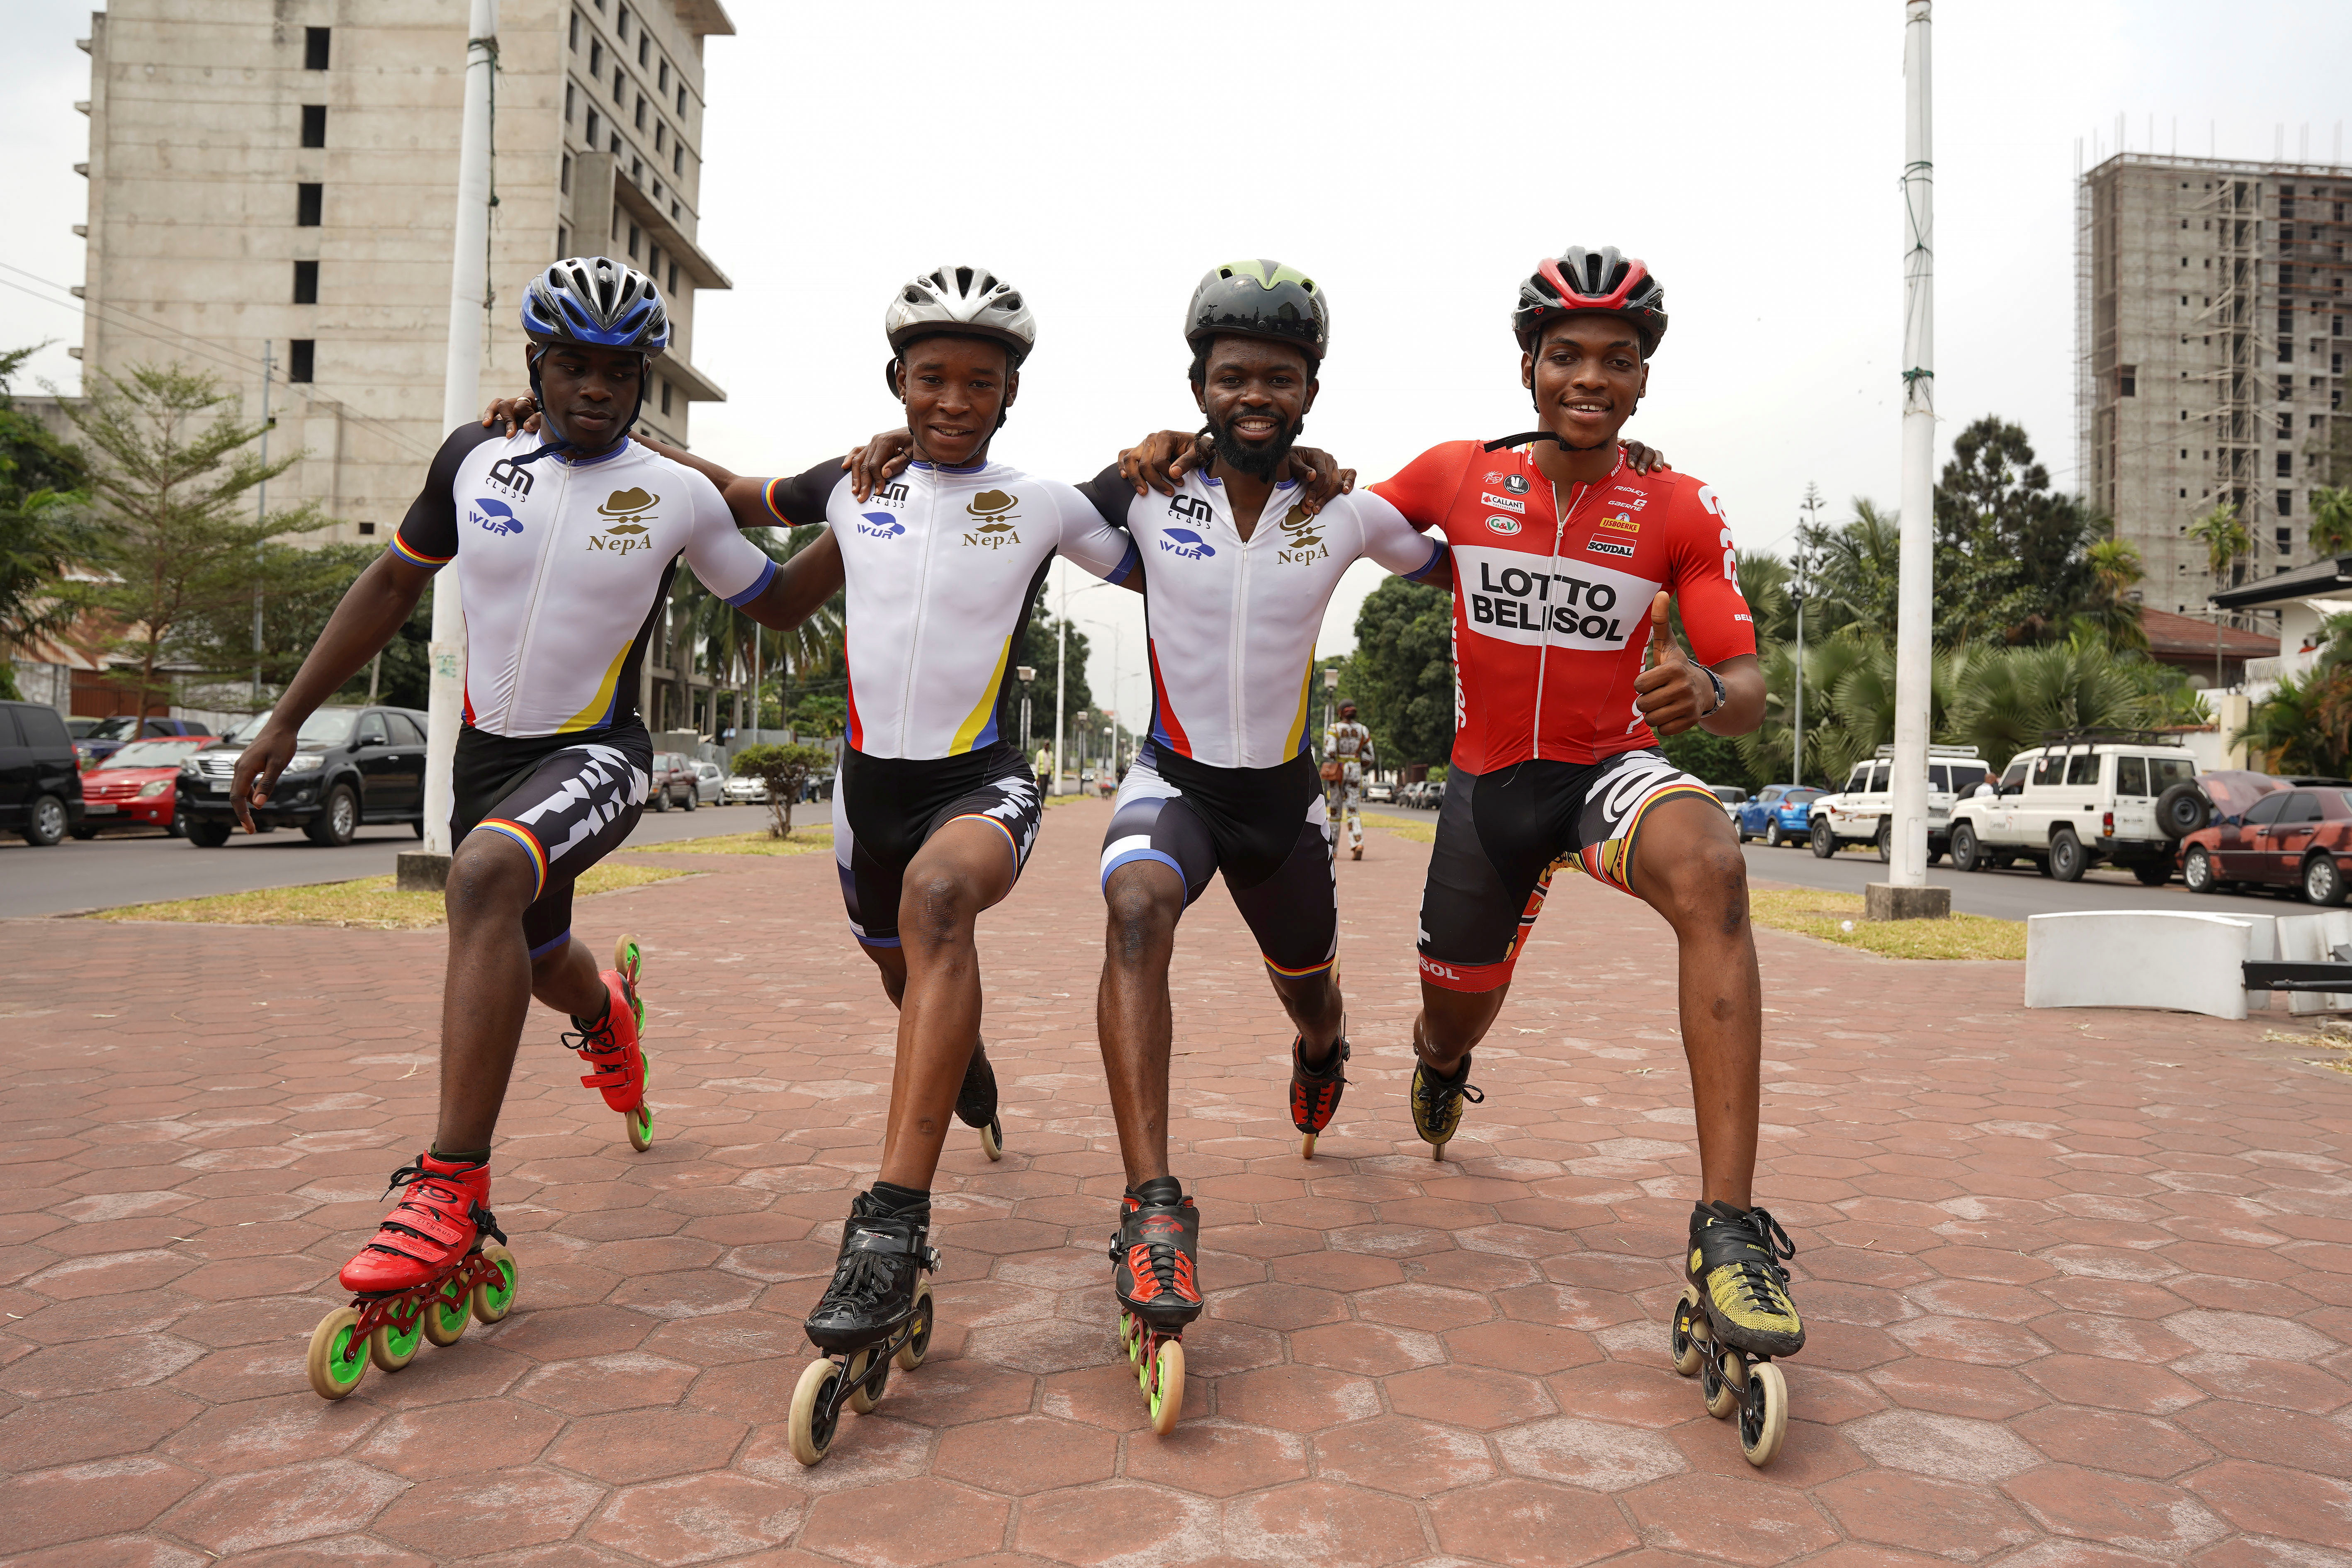 Serge Makolo poses for a photo with his speed skating teammates in Kinshasa, Democratic Republic of Congo, September 16, 2021. REUTERS/Hereward Holland